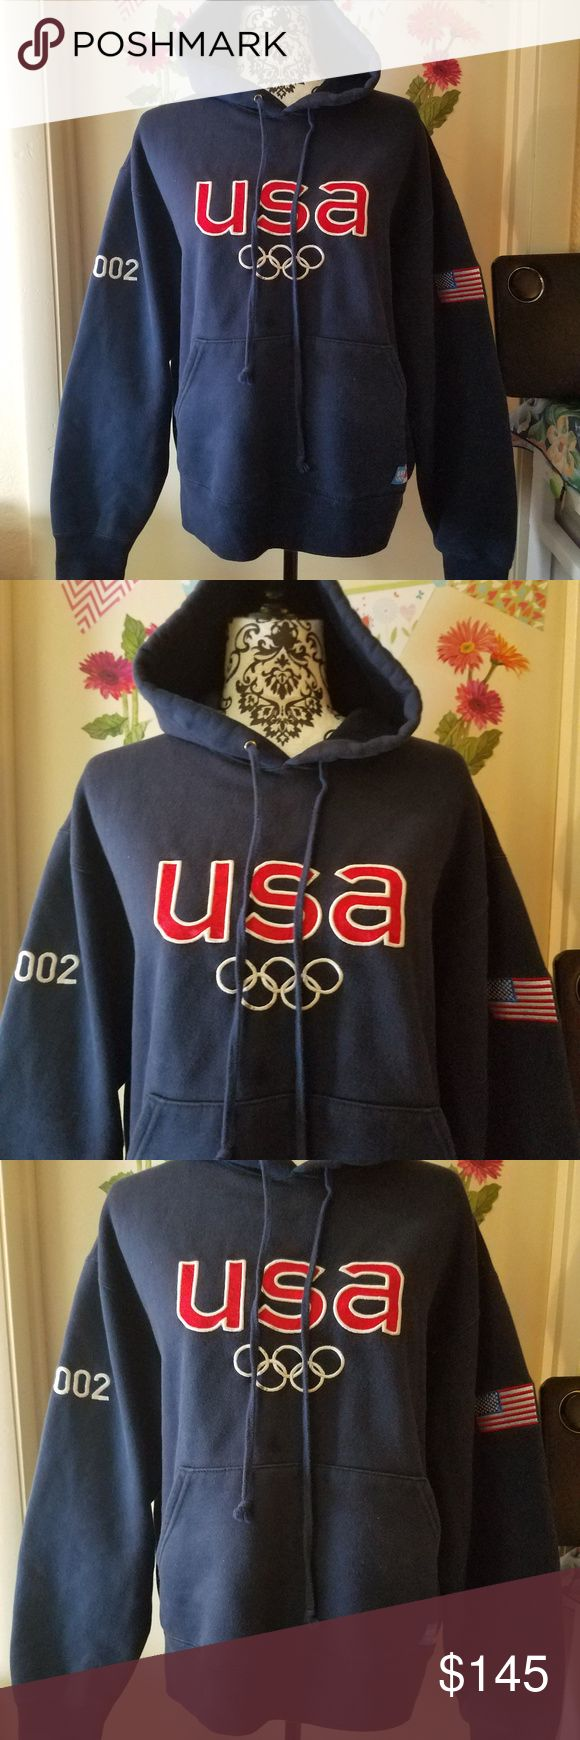 """RARE ROOTS USA Official Outfitter 2002 Olympic M RARE COLLECTIBLE ROOTS USA Official Outfitter 2002 Olympic Team Men Dark Blue Cotton M Excellent Used Condition  Beautiful fleeced long sleeve sweater, pullover   80% Cotton  20% Polyester  Measurements:  Length: 26"""" in Bust: 26"""" in  Thank you for looking!  S-T07 ROOTS Sweaters"""